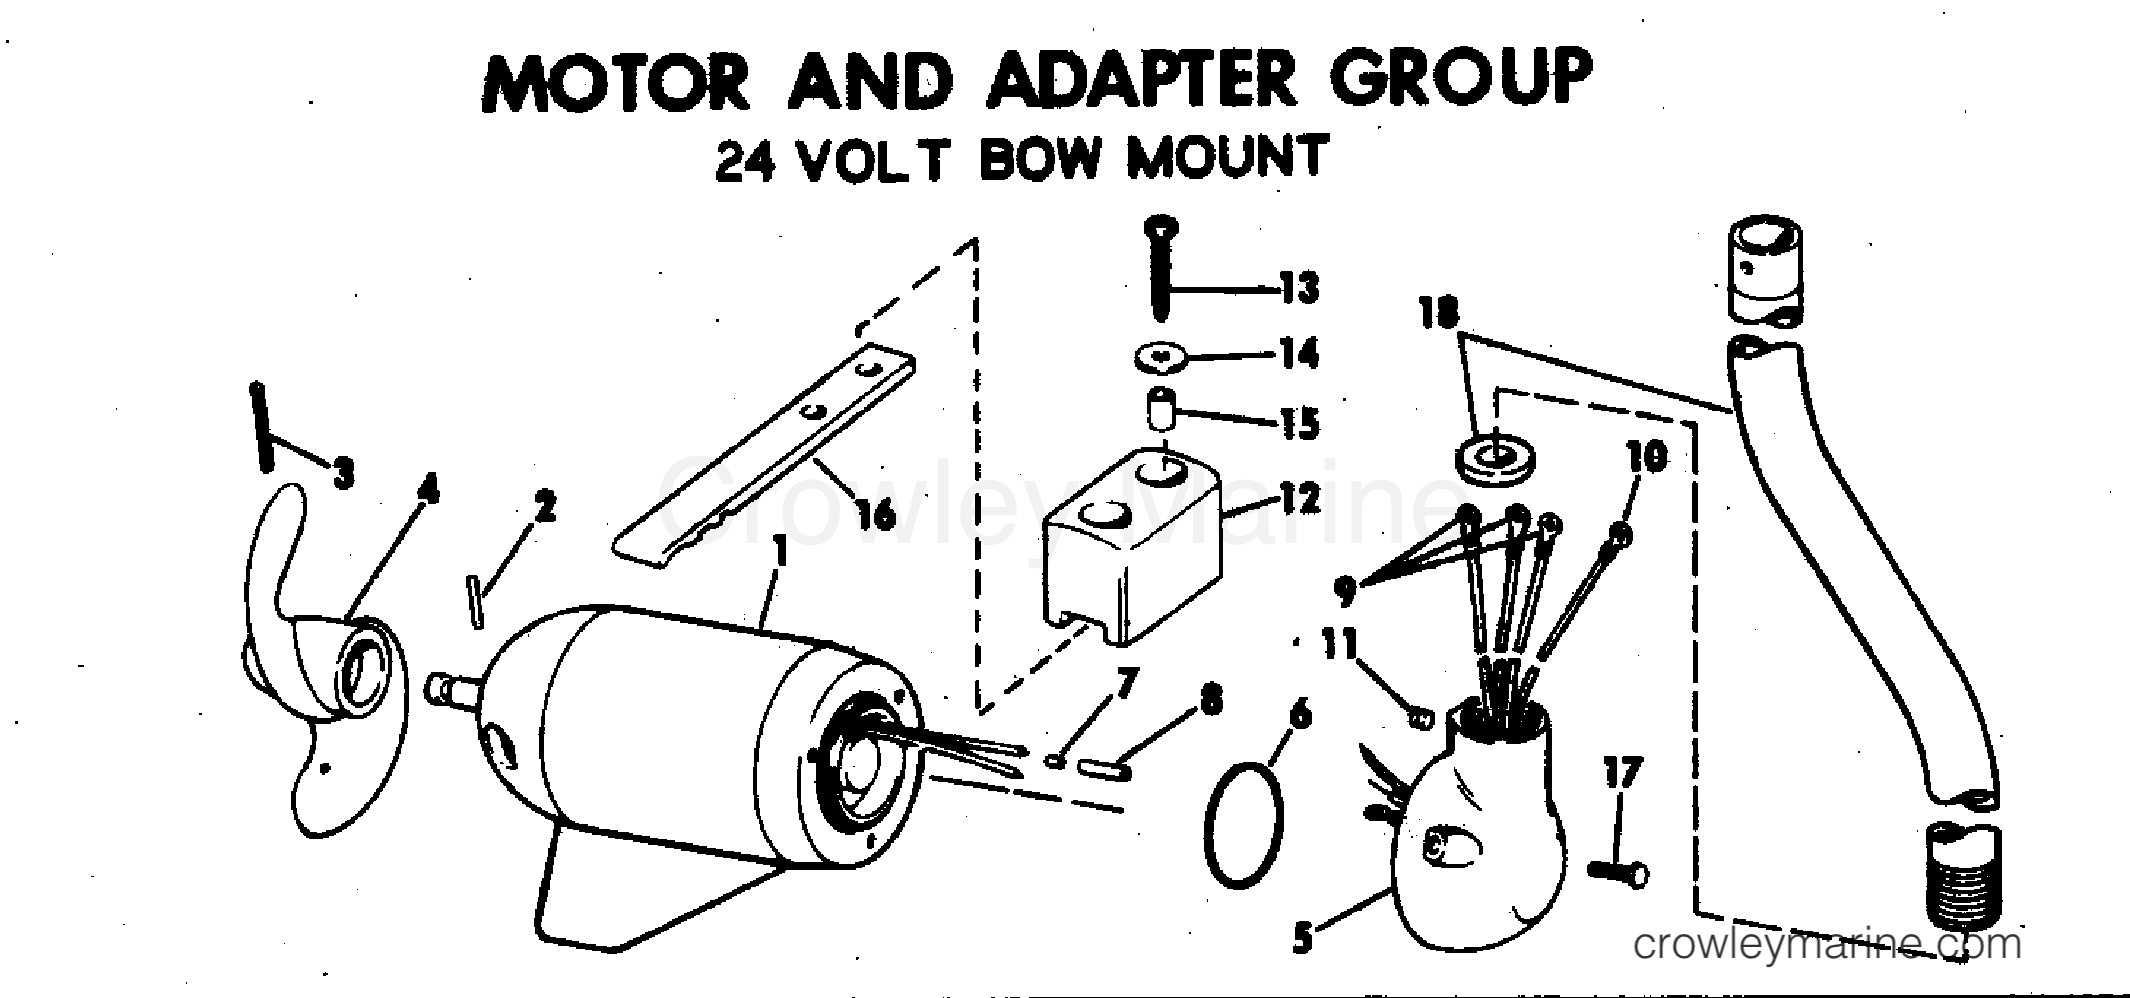 1978 Electric Motors 12 Volt - EB52R - MOTOR AND ADAPTER GROUP 24 VOLT BOW MOUNT